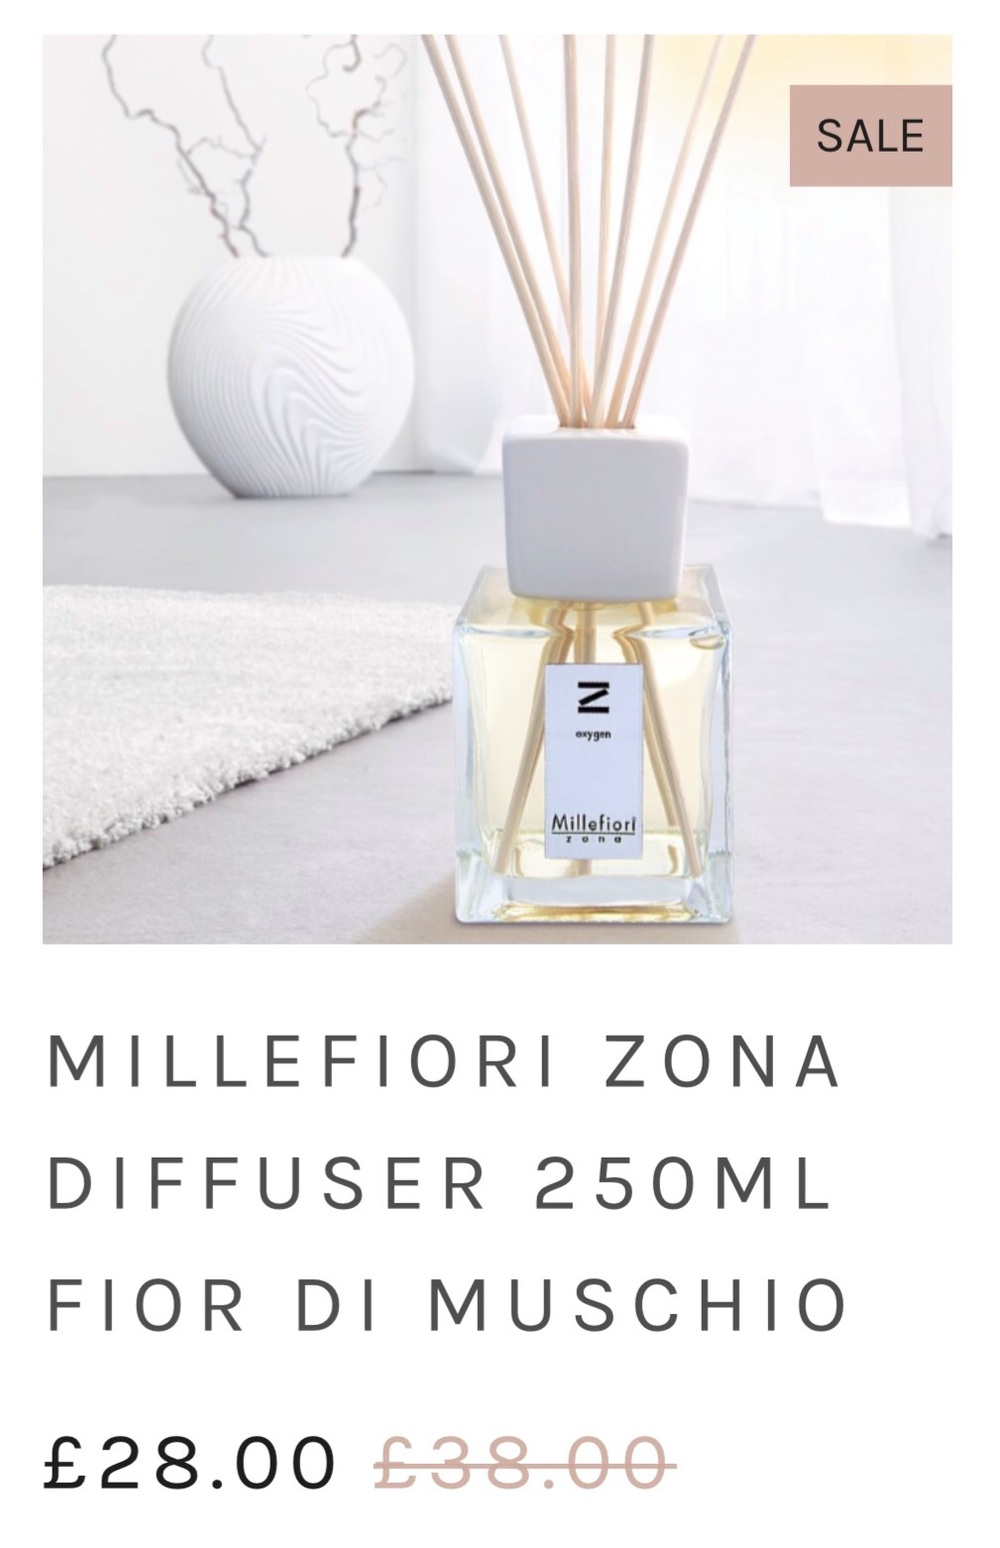 Our home scents are on sale too.  Diffusers are now from £19 and candles from £16.